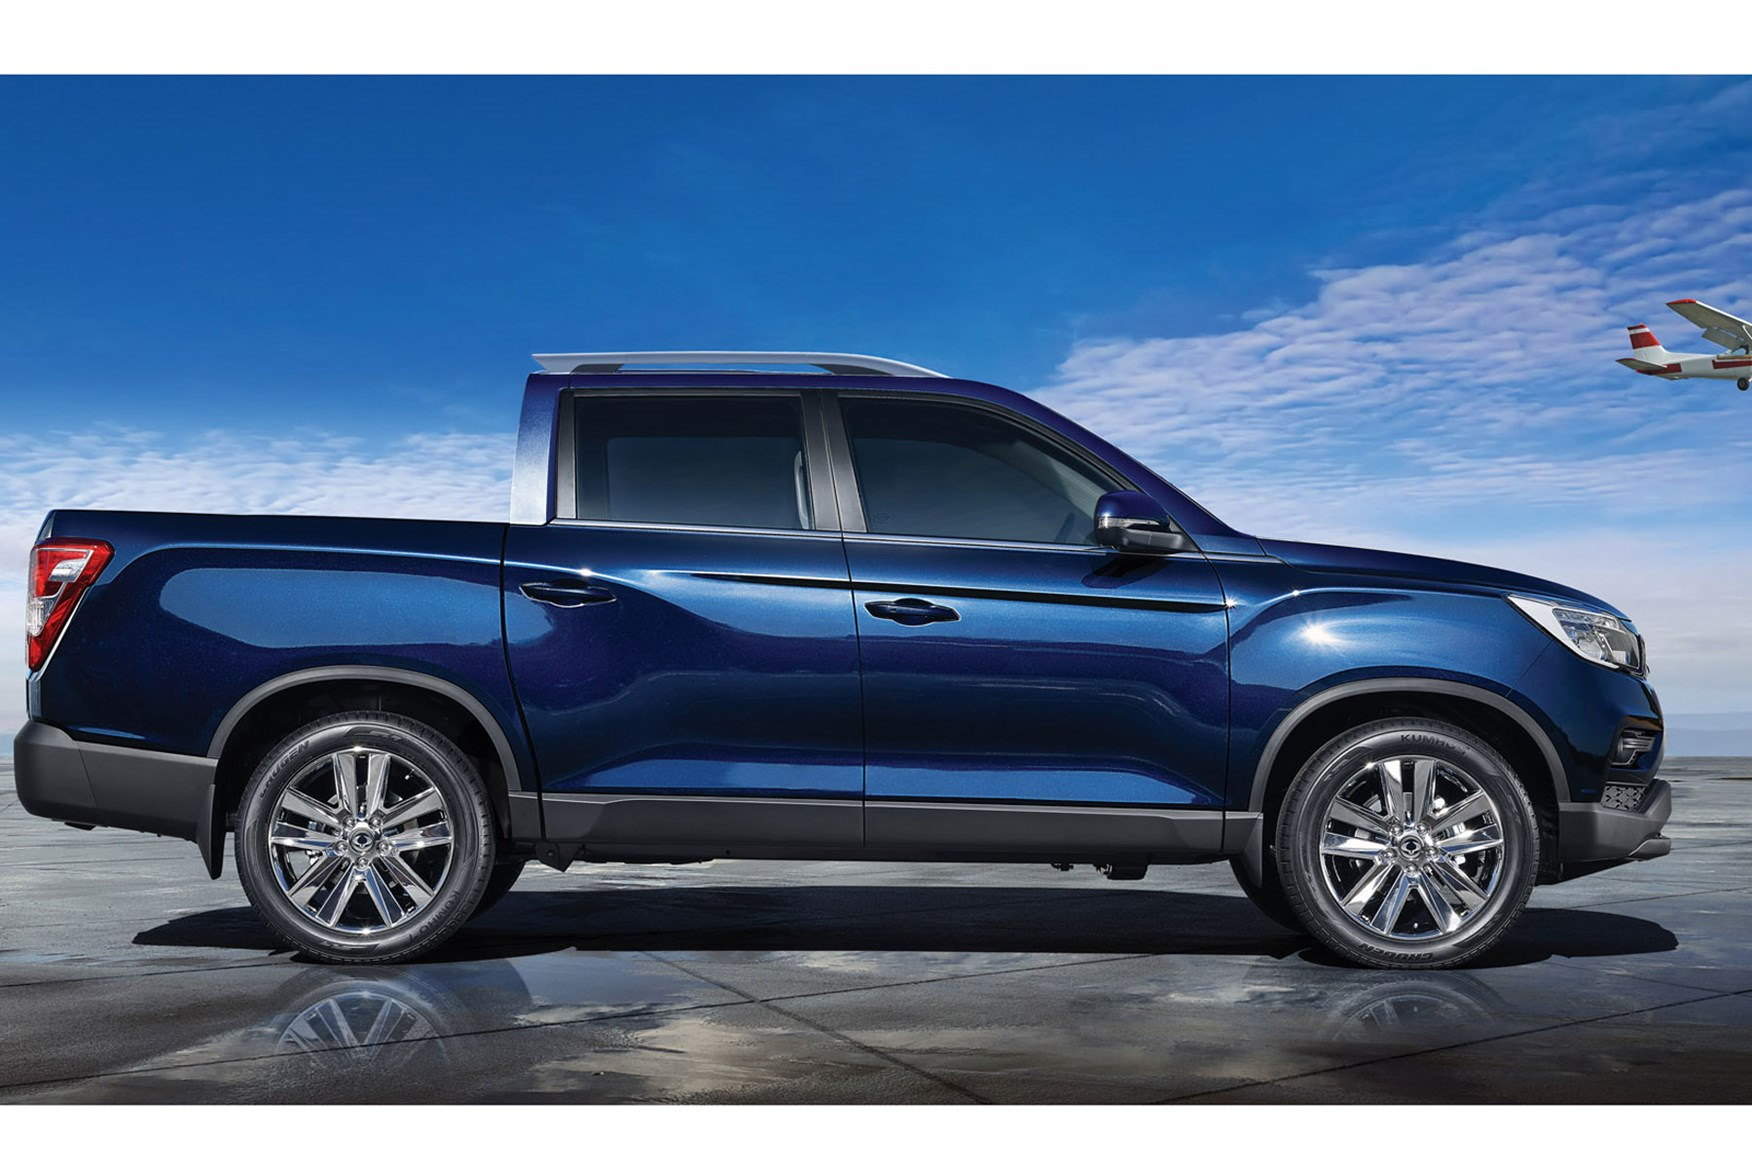 New SsangYong Musso pickup 2018 first driving impressions ...